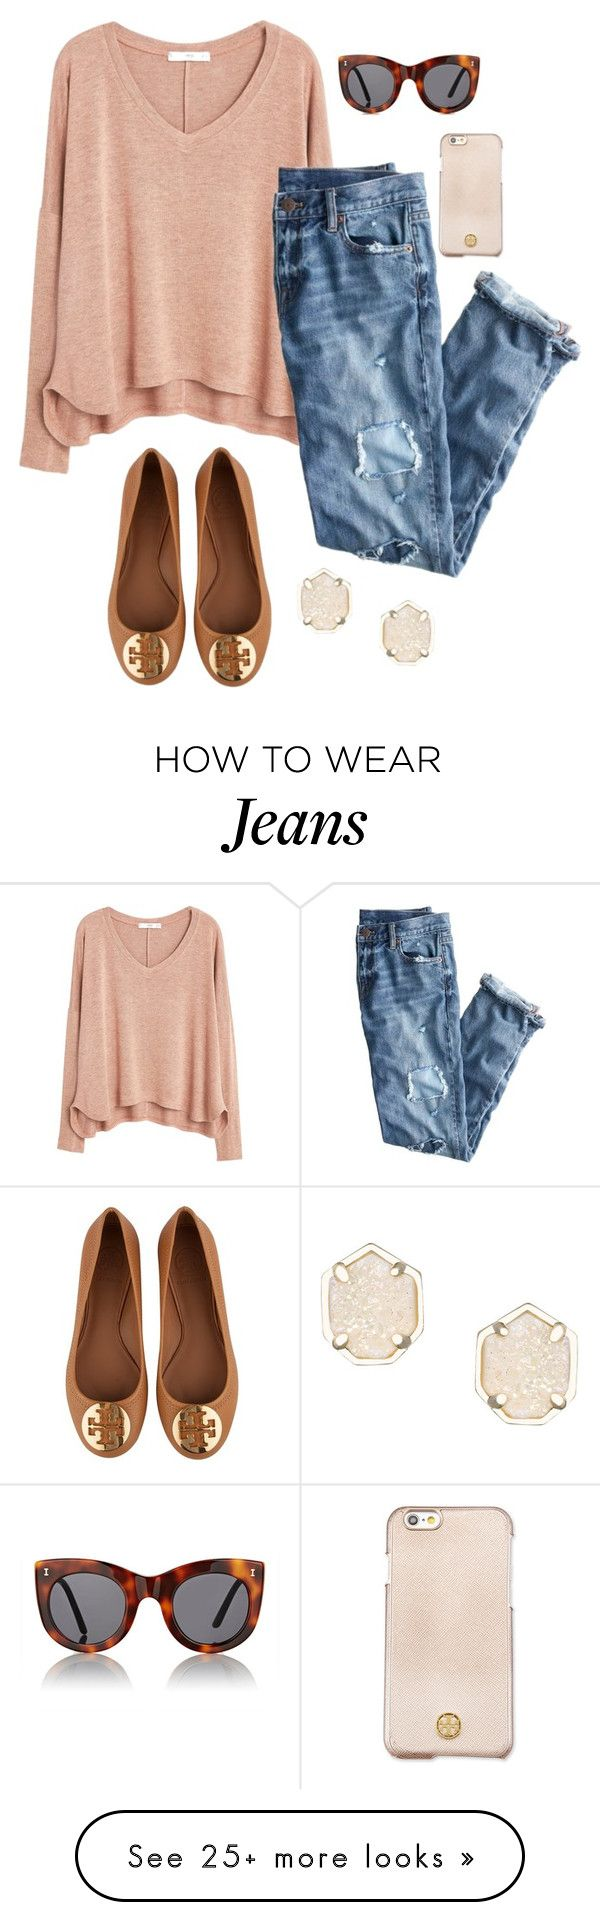 """Blush and boyfriend jeans"" by thepinkcatapillar on Polyvore featuring MANGO, J.Crew, Illesteva, Tory Burch and Kendra Scott"